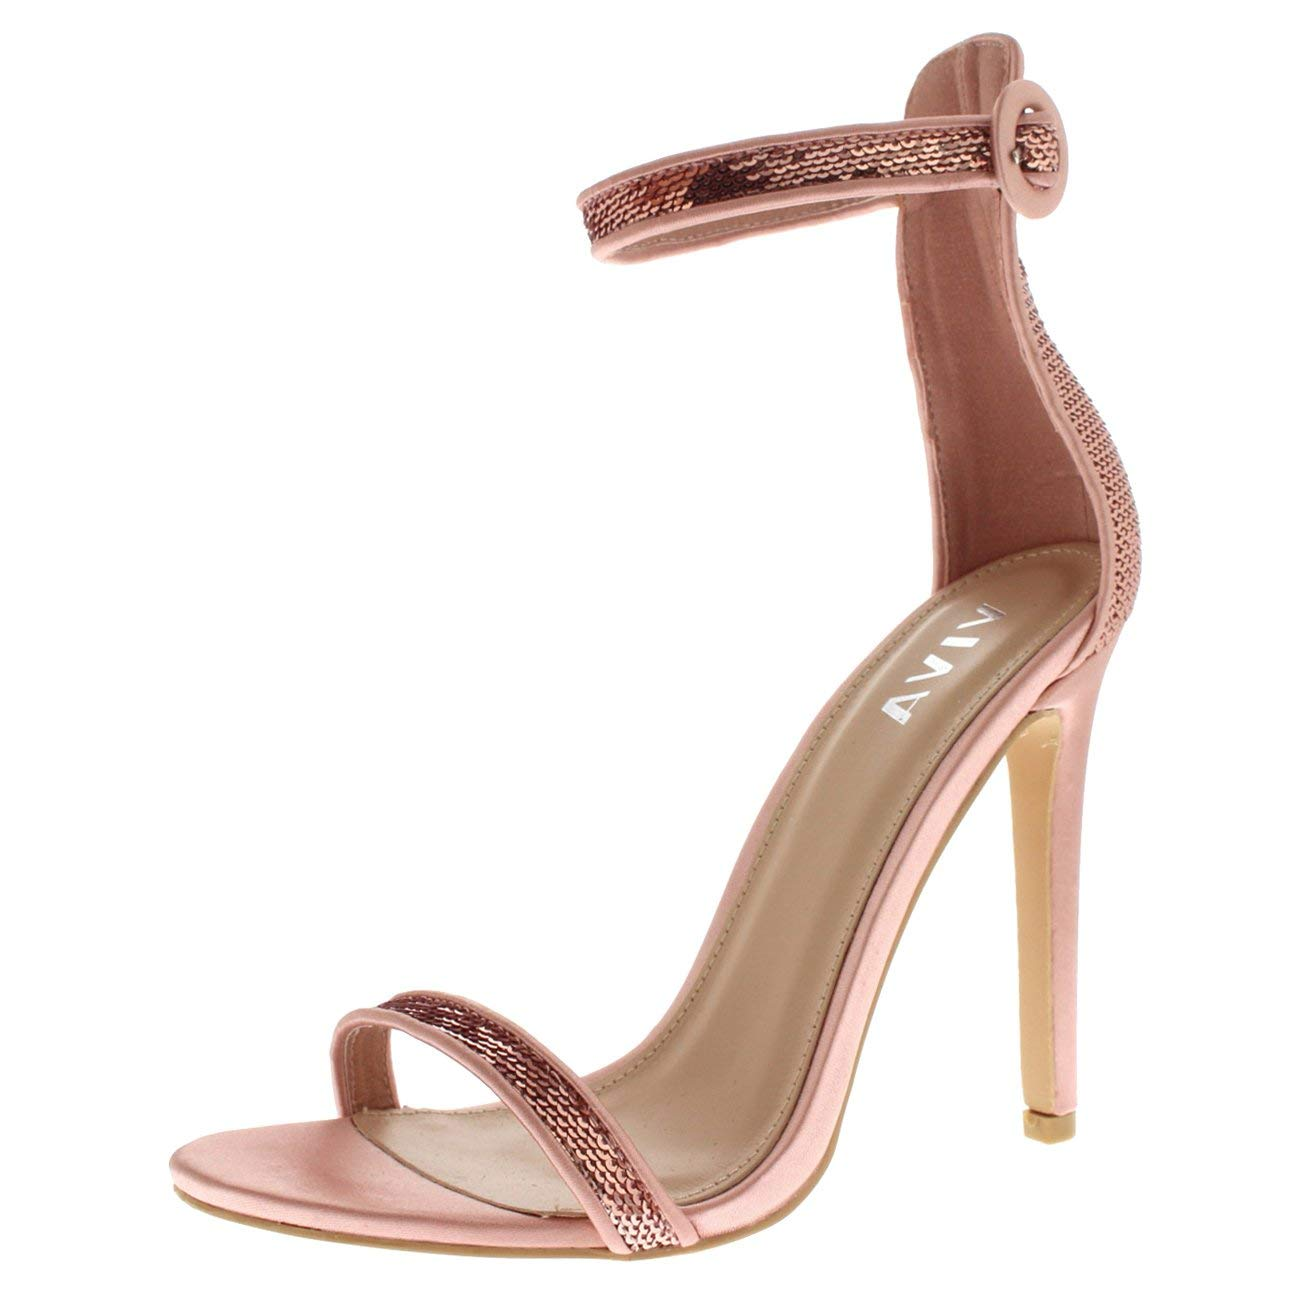 7bc38ae4ab2 Get Quotations · Viva Womens Sequin Glitter Ankle Strap High Heel Sandal  Eveing Party Shoes Shoes